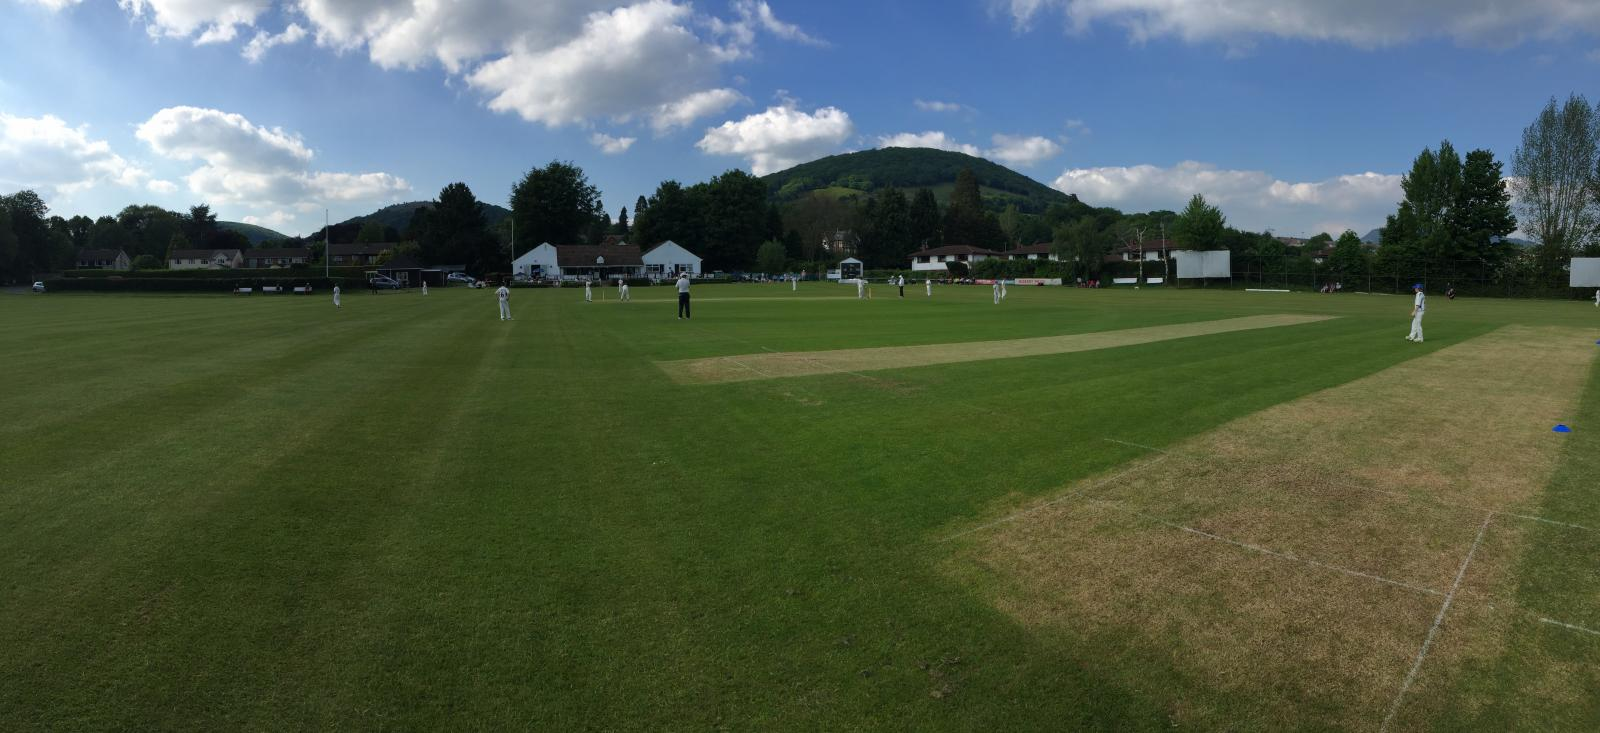 Devon U12's take the field against Gwent at Abergavenny CC